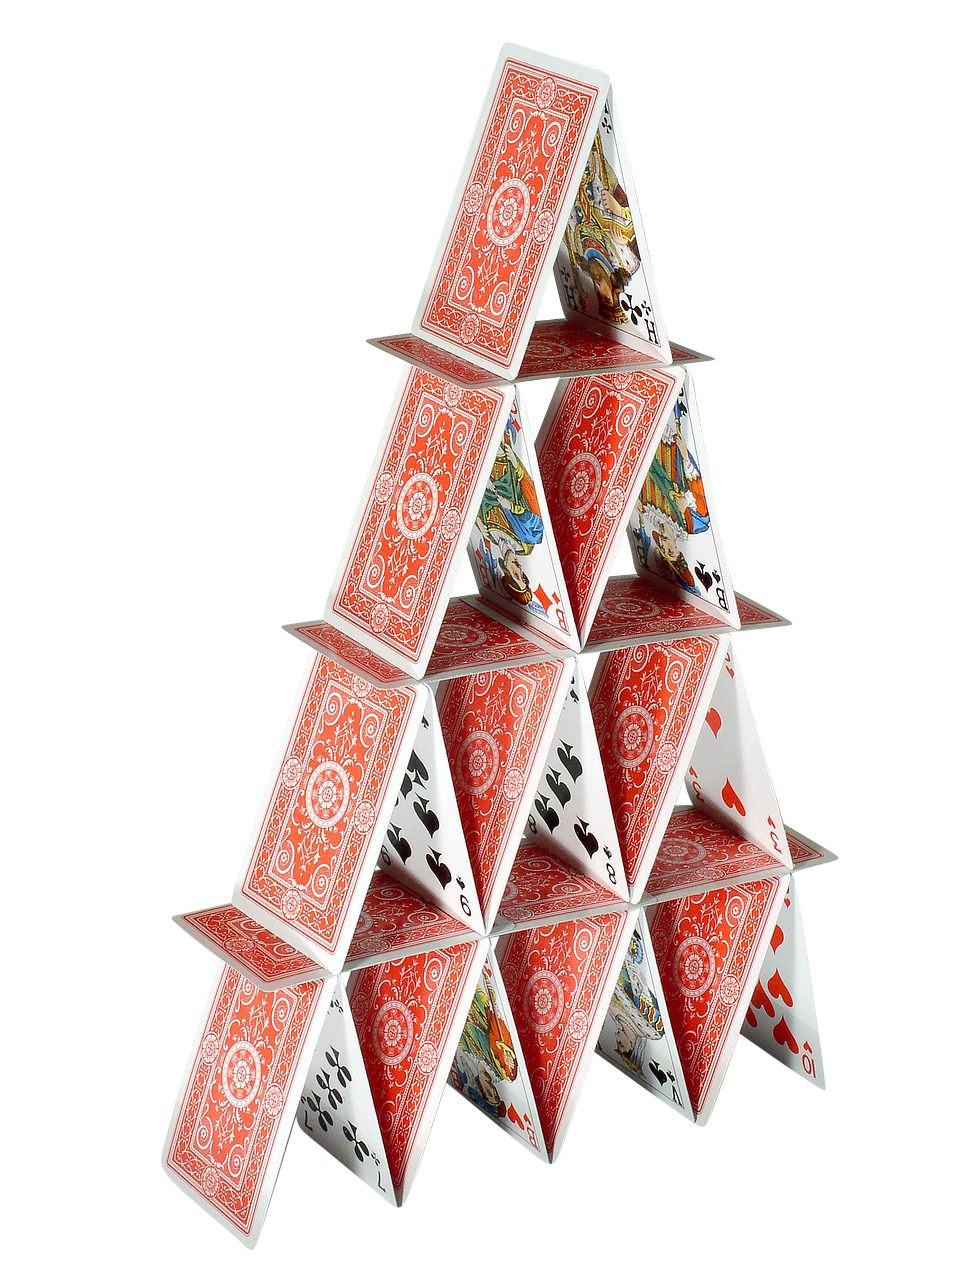 House Of Cards Png - House of Cards PNG Image - PurePNG | Free transparent CC0 PNG ...